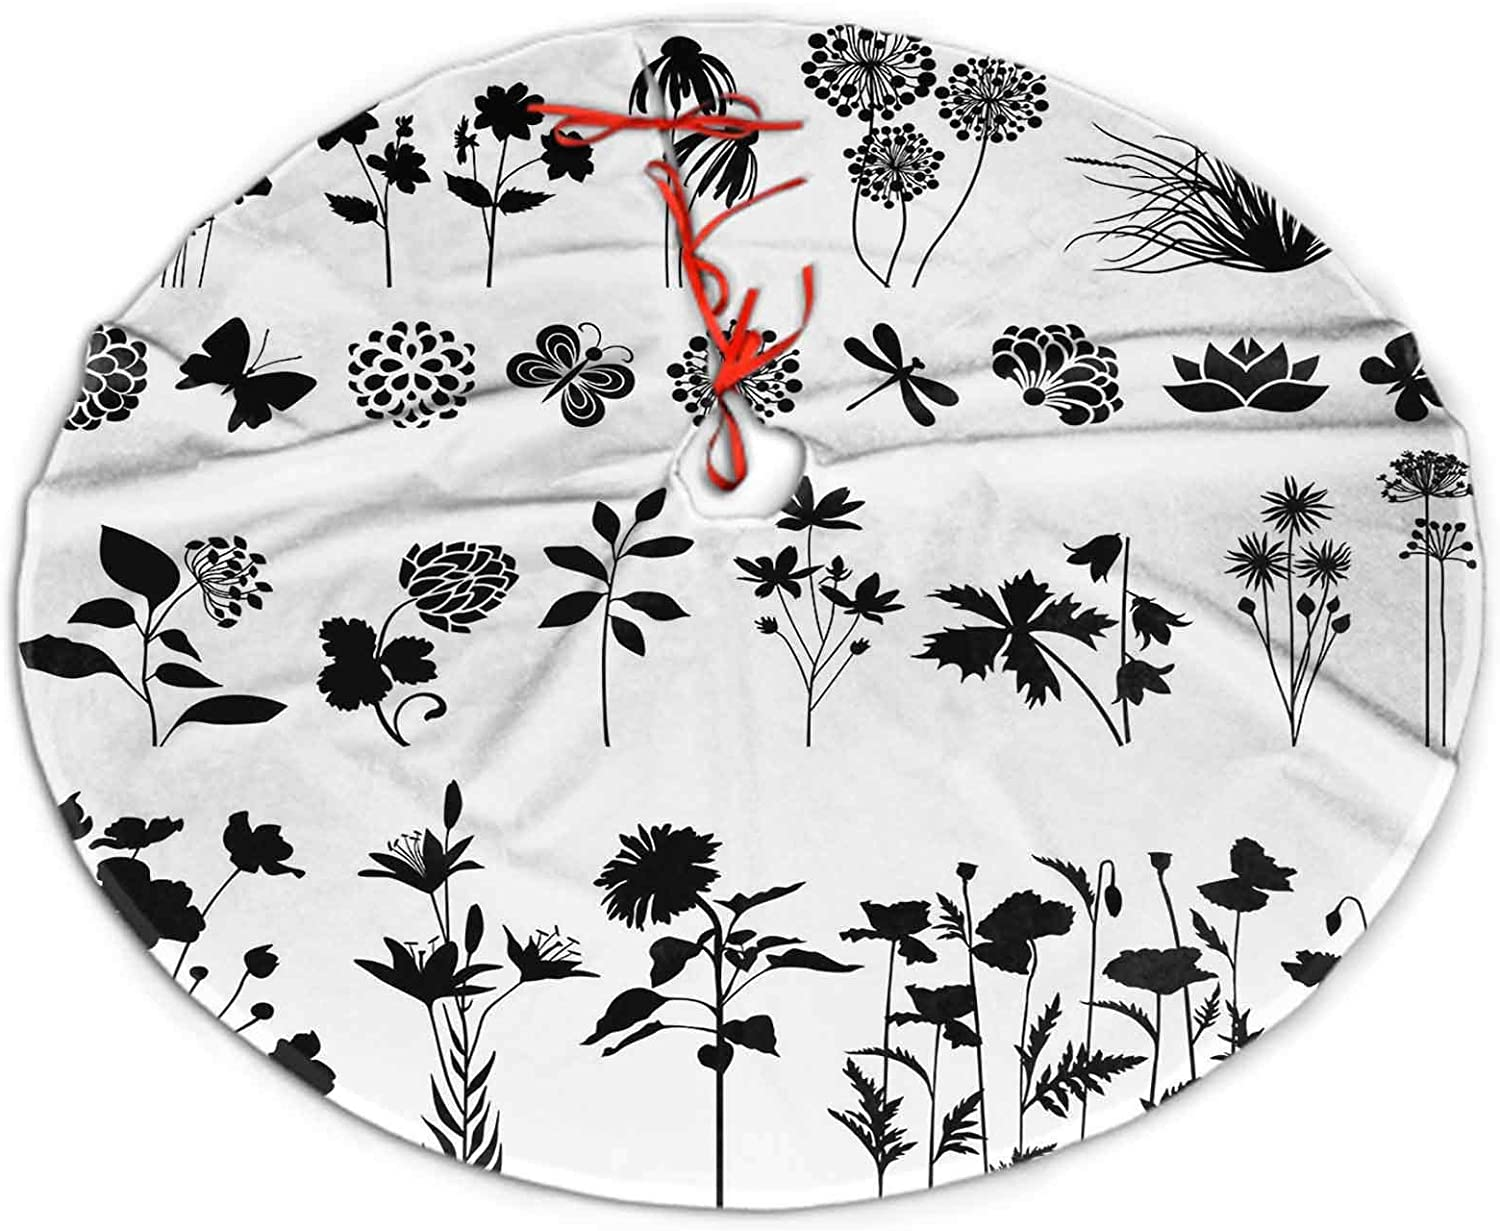 Christmas Tree Skirt Flowers and Plants Luxury Tree Skirts for Home Decoration 30